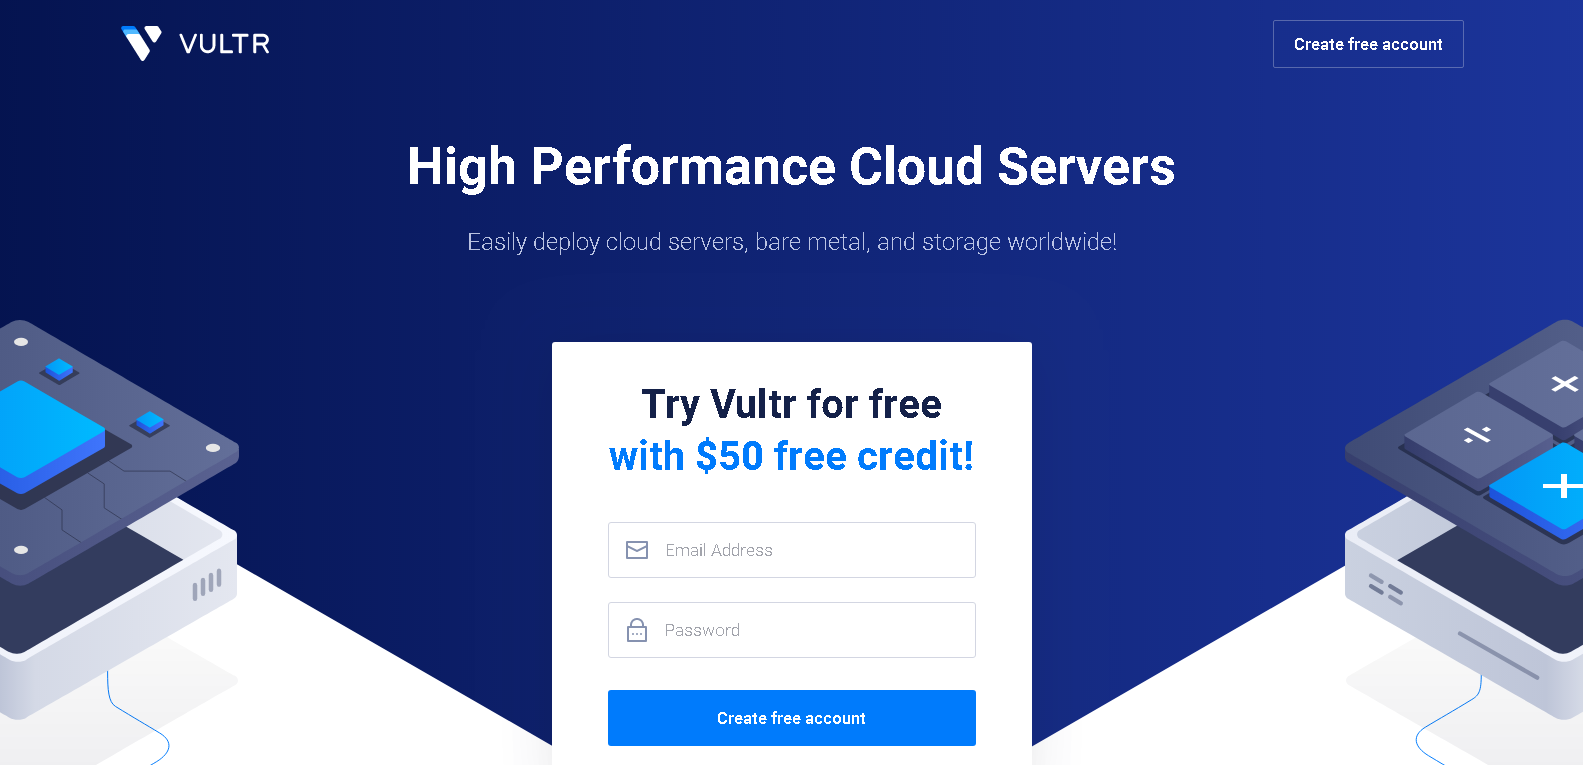 vultr-promotion